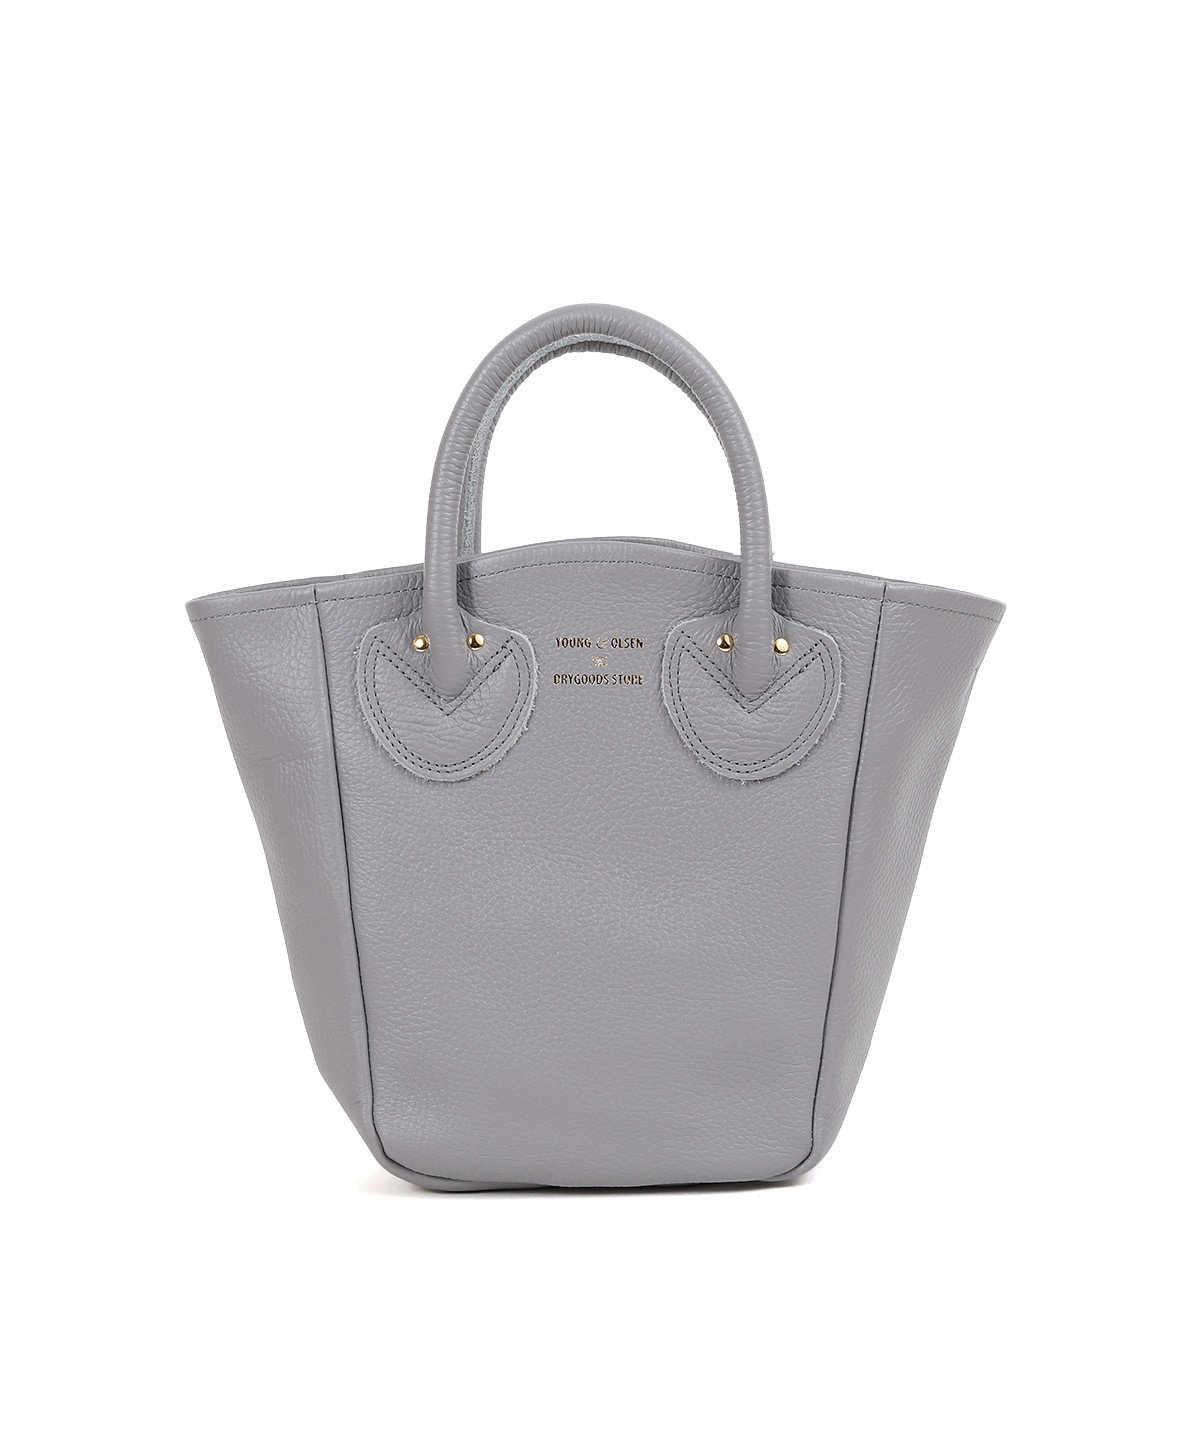 PETITE LEATHER TOTE